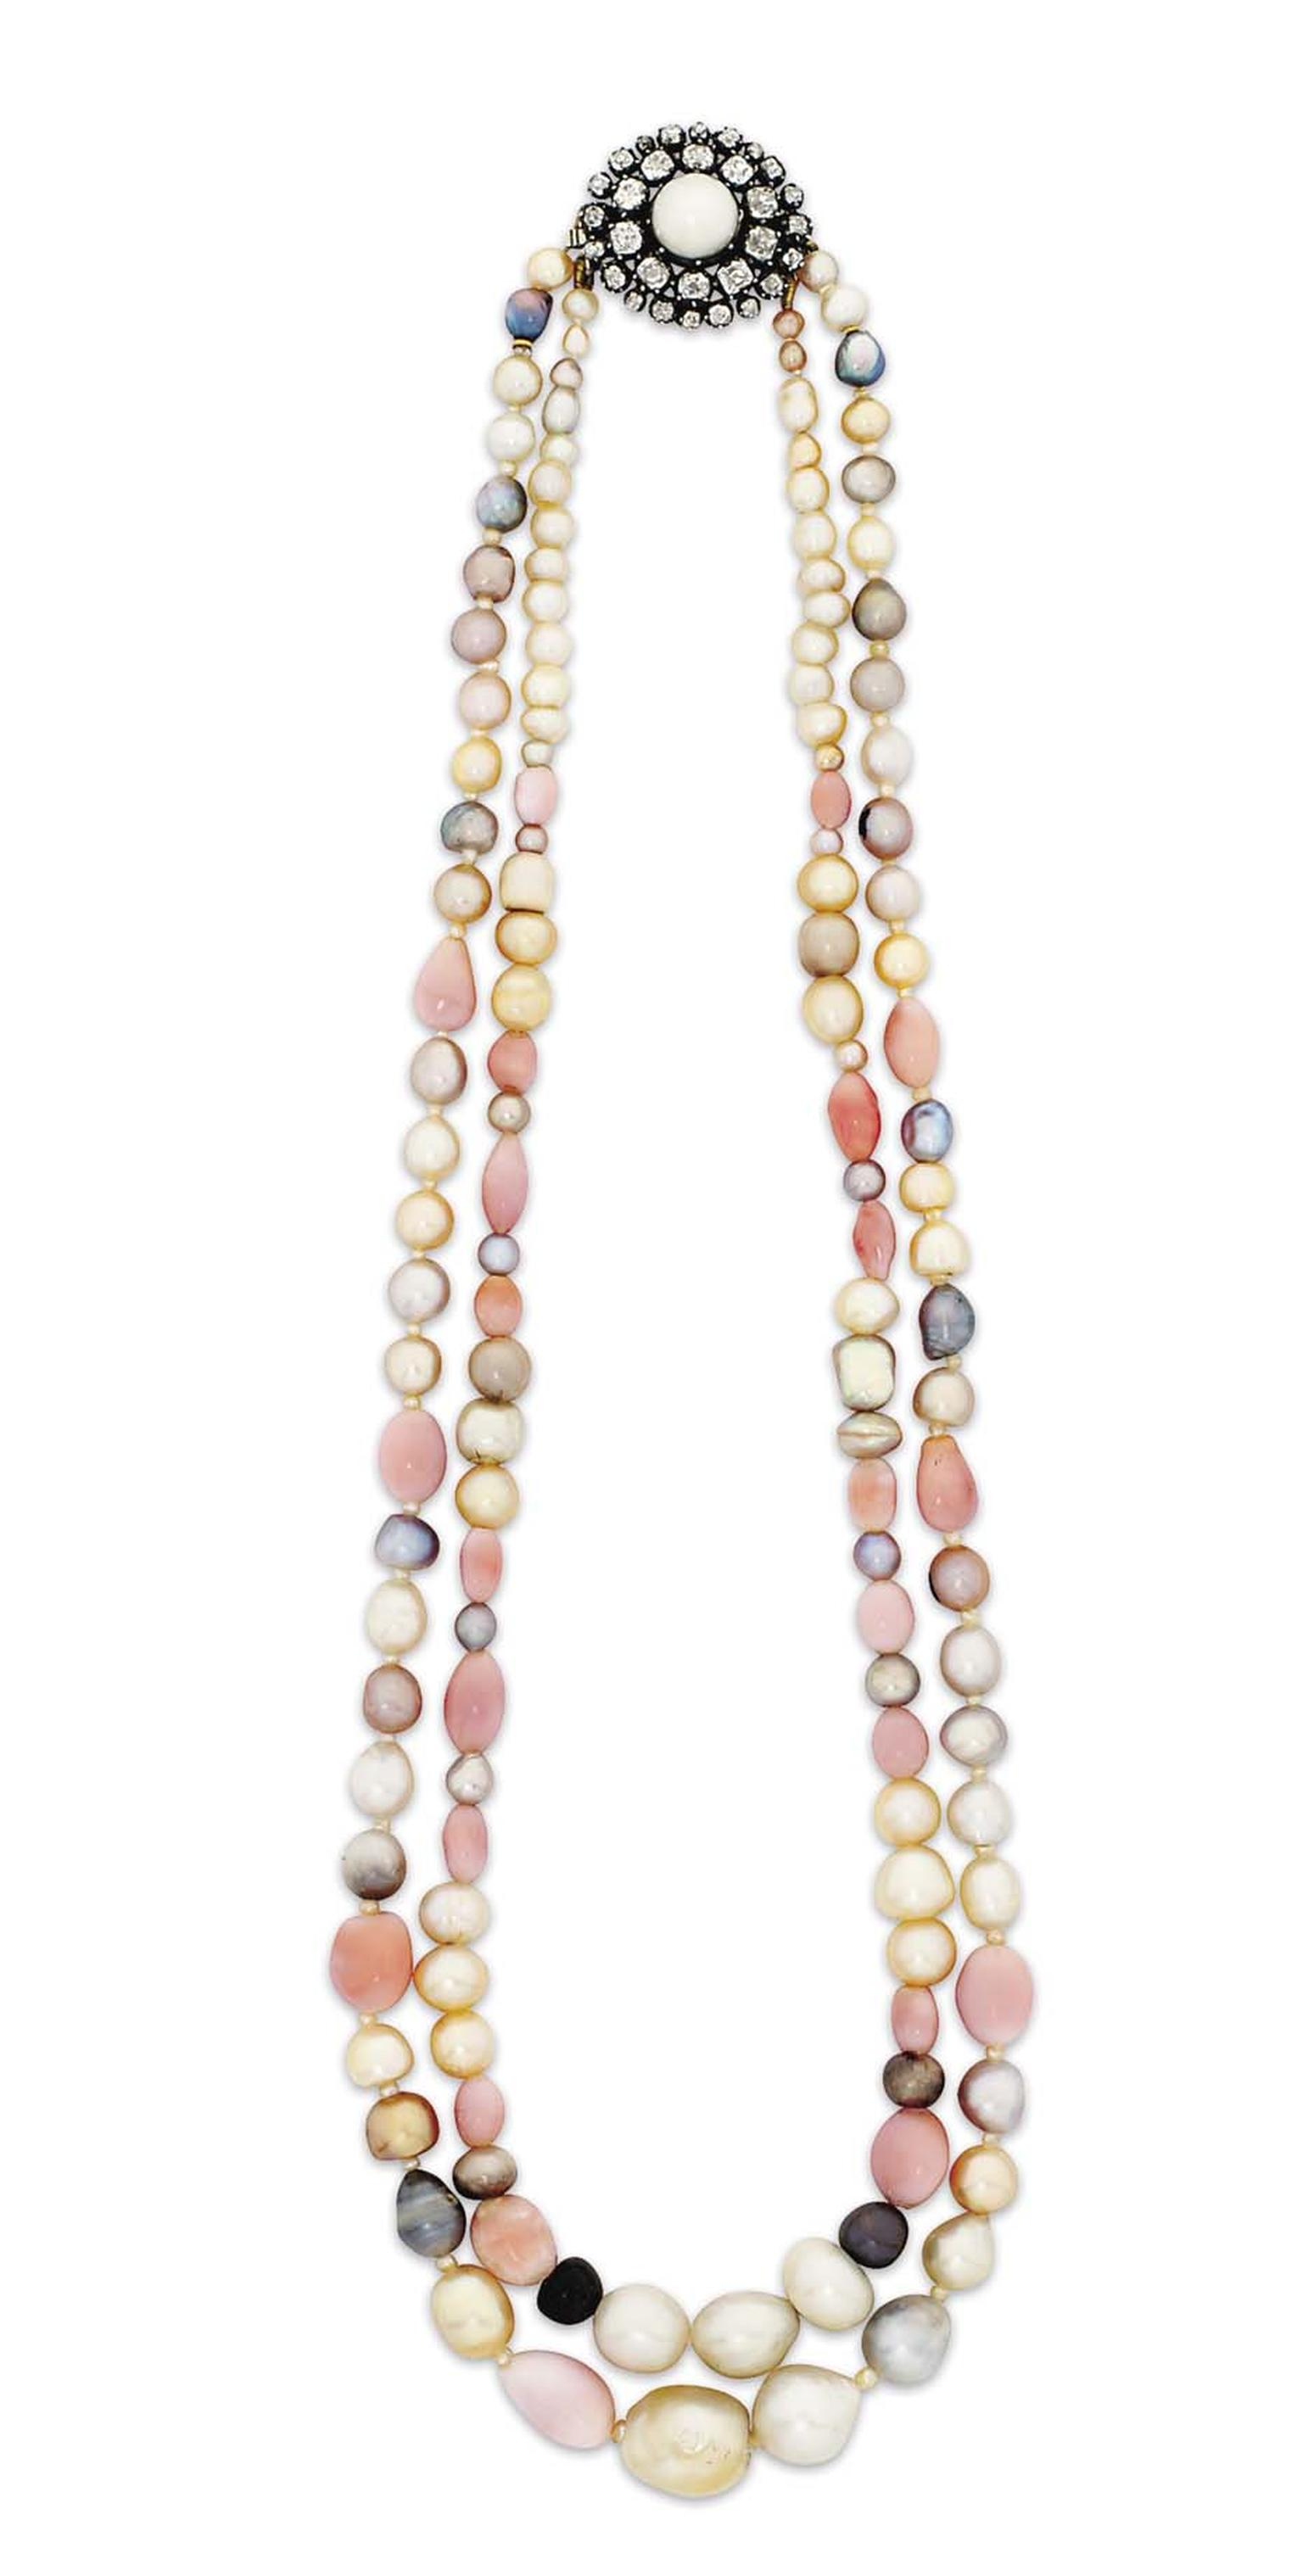 Lot 334 is not the most expensive or even the most beautiful, but it is intriguing: a late 19th century conch pearl necklace with a mix of natural and nubby conch pearls sold for £11,875, (estimate: £3,000-5,000).